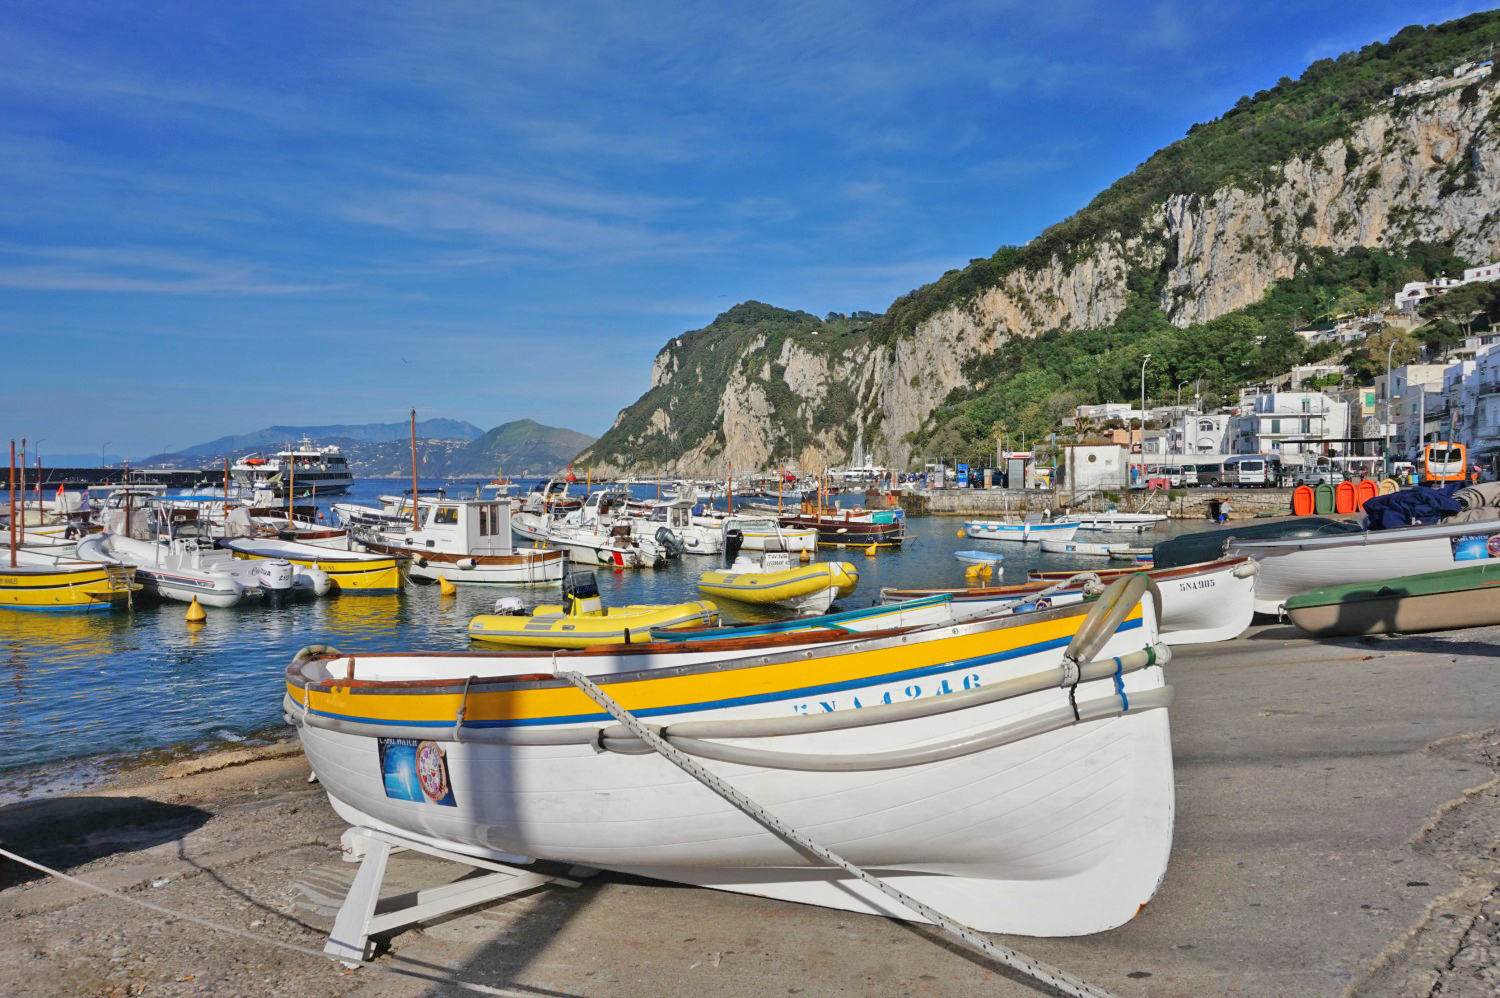 Famous sights in Italy - Capri marina.